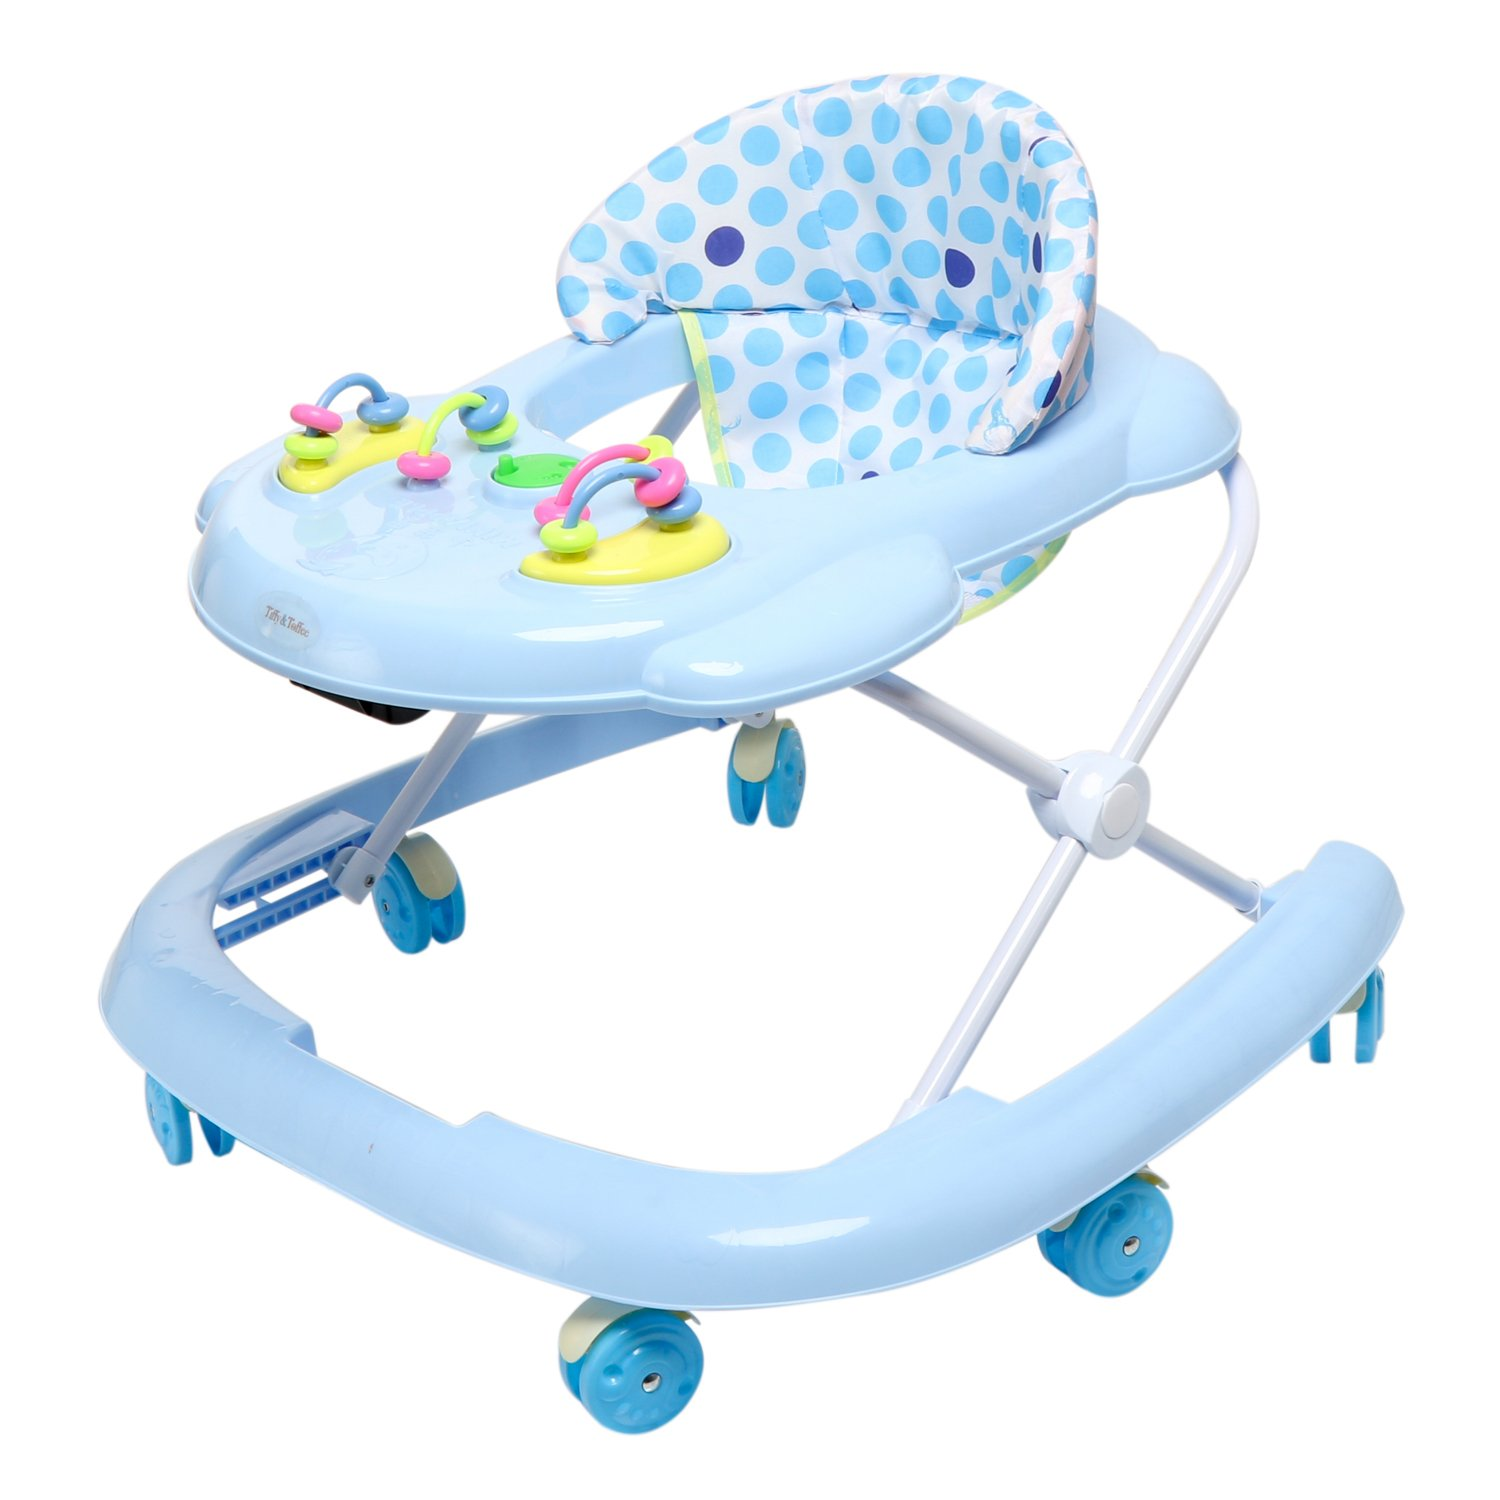 Buy Tiffy & Toffee Maxtrem Baby Walker (Royal Blue) Online at Low ...